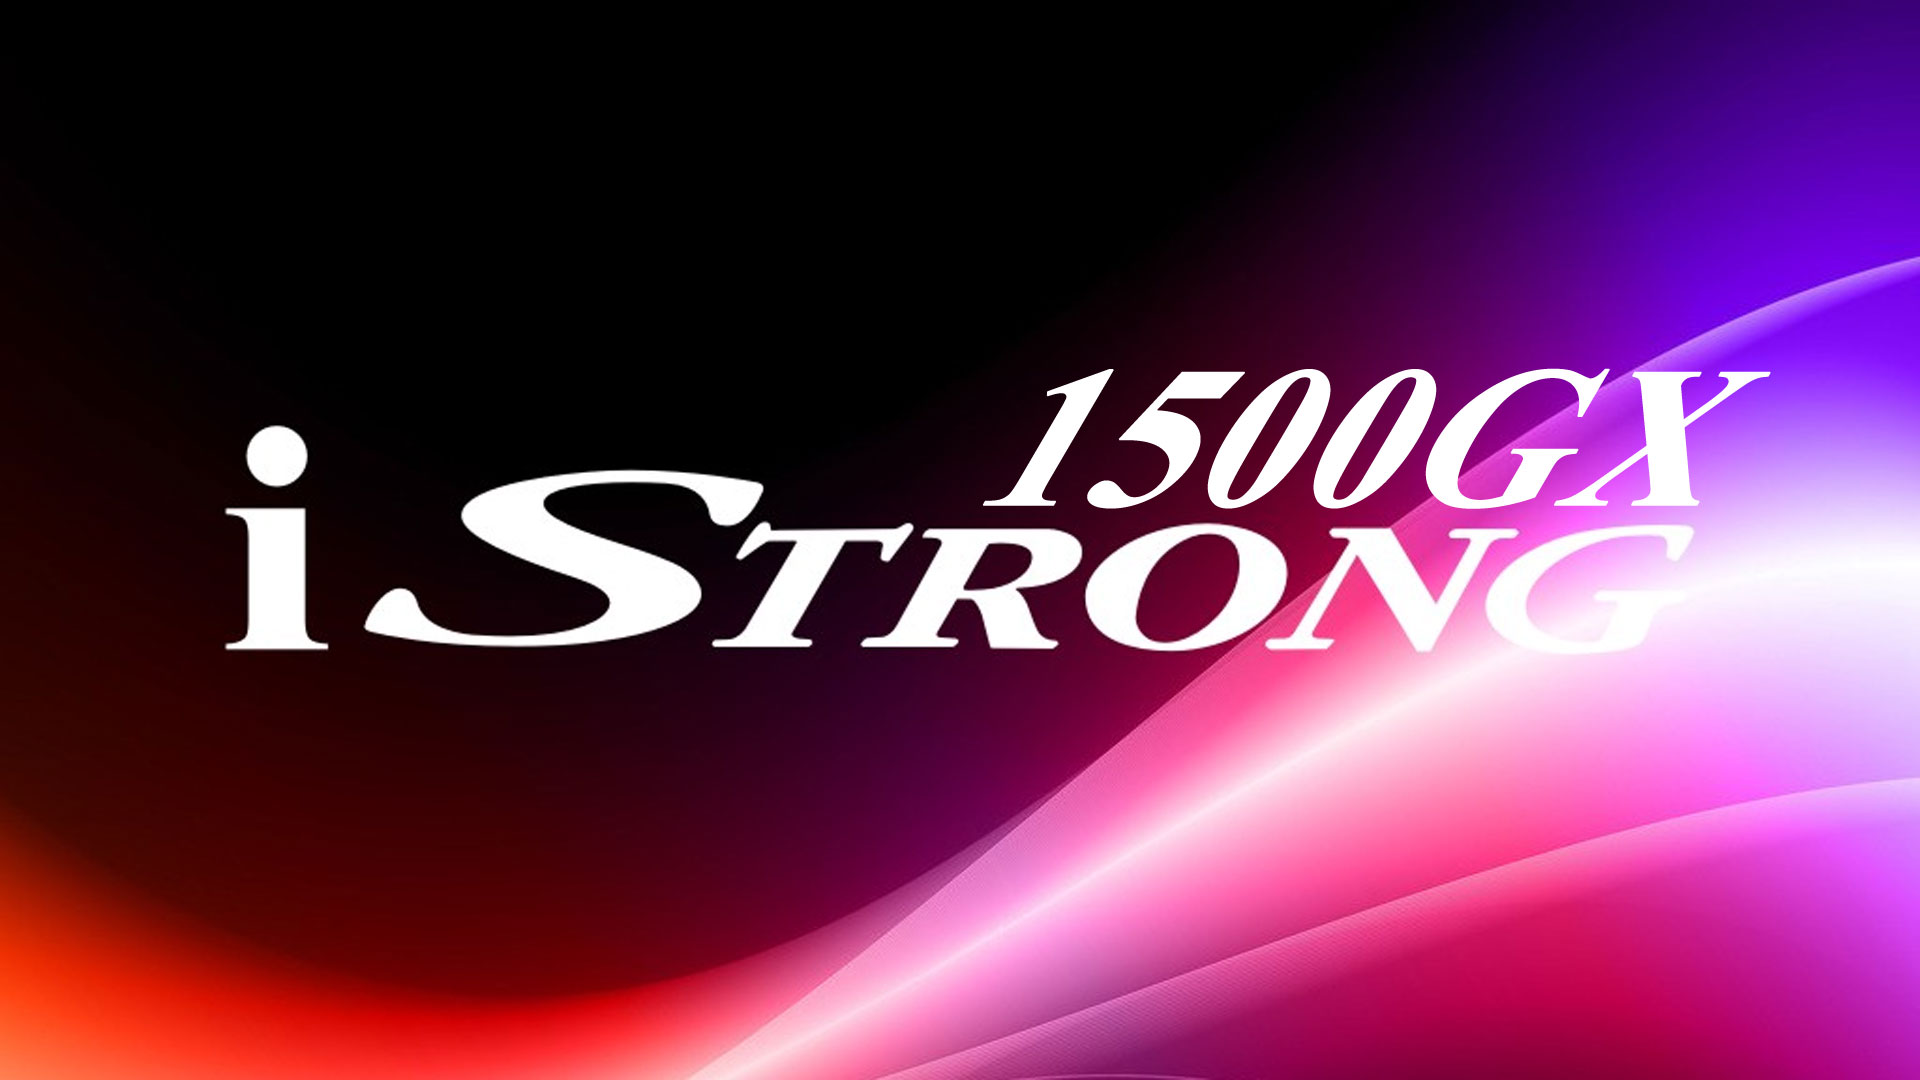 Download Firmware iStrong 1550GX Software Receiver New Update